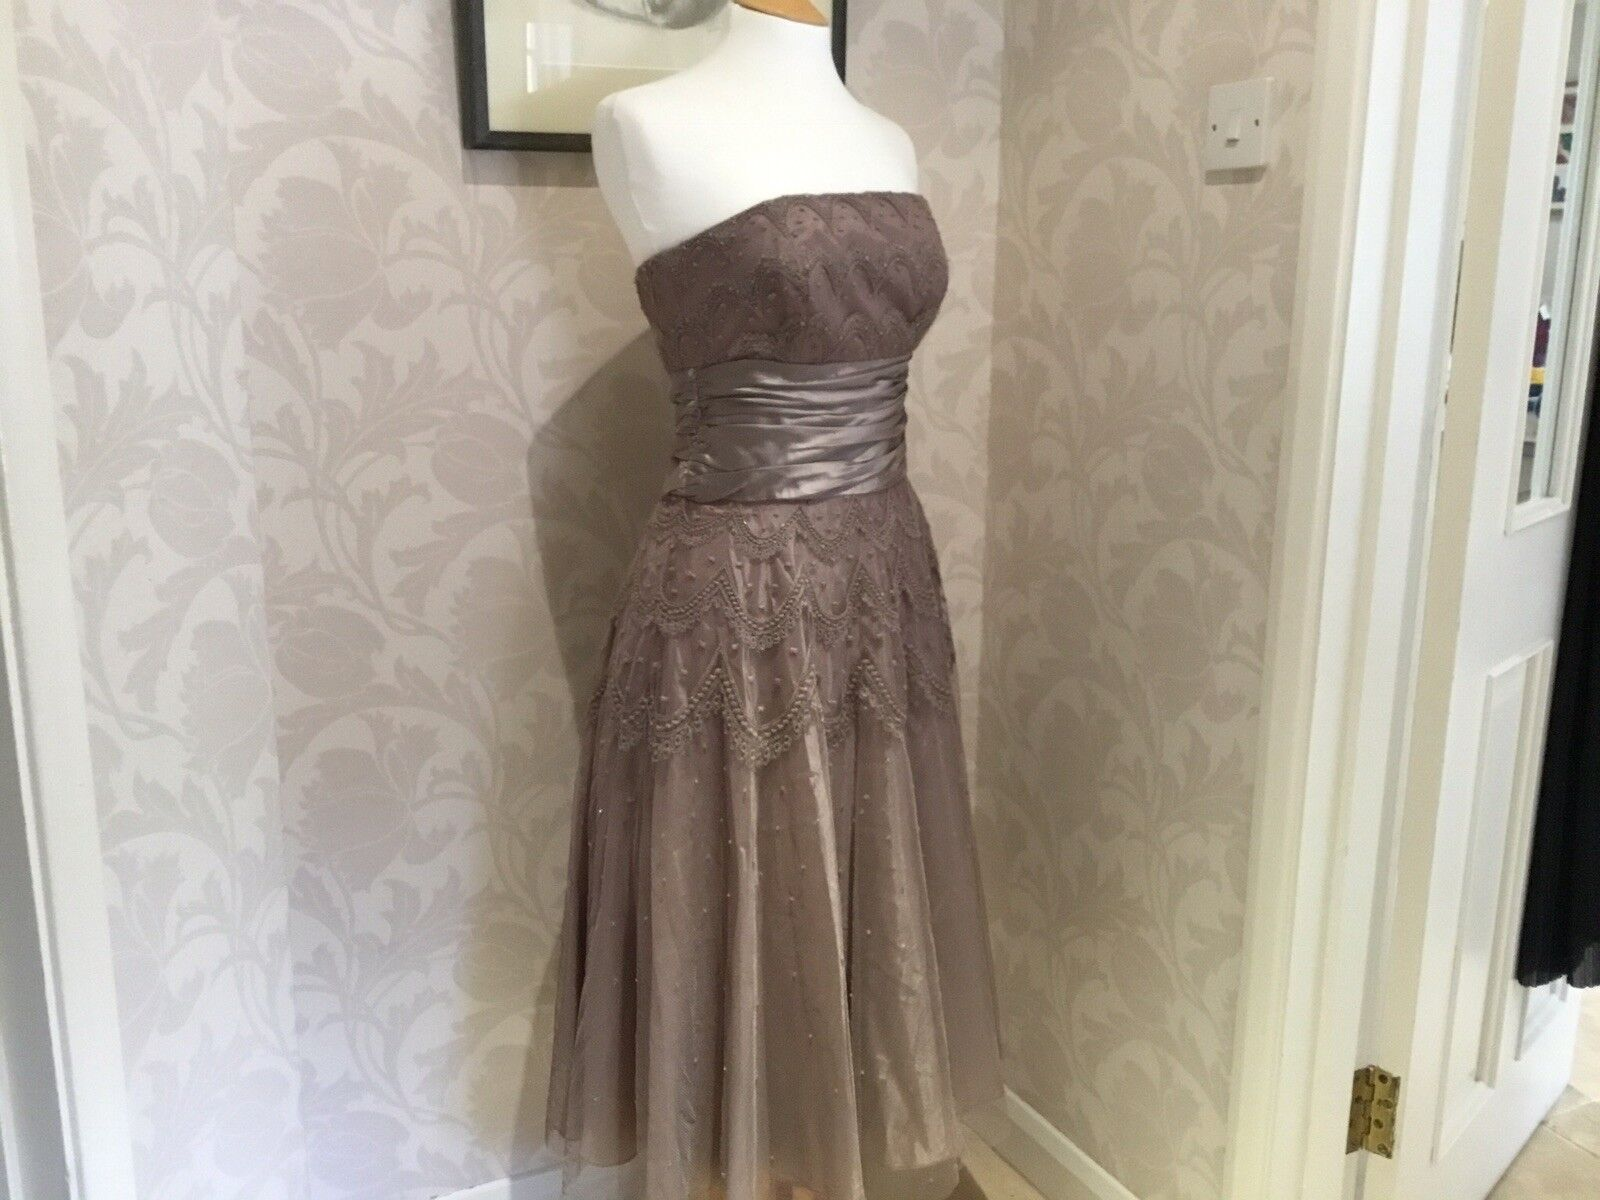 Monsoon Ladies Straps Or Strapless Evening Dress. Size 10.